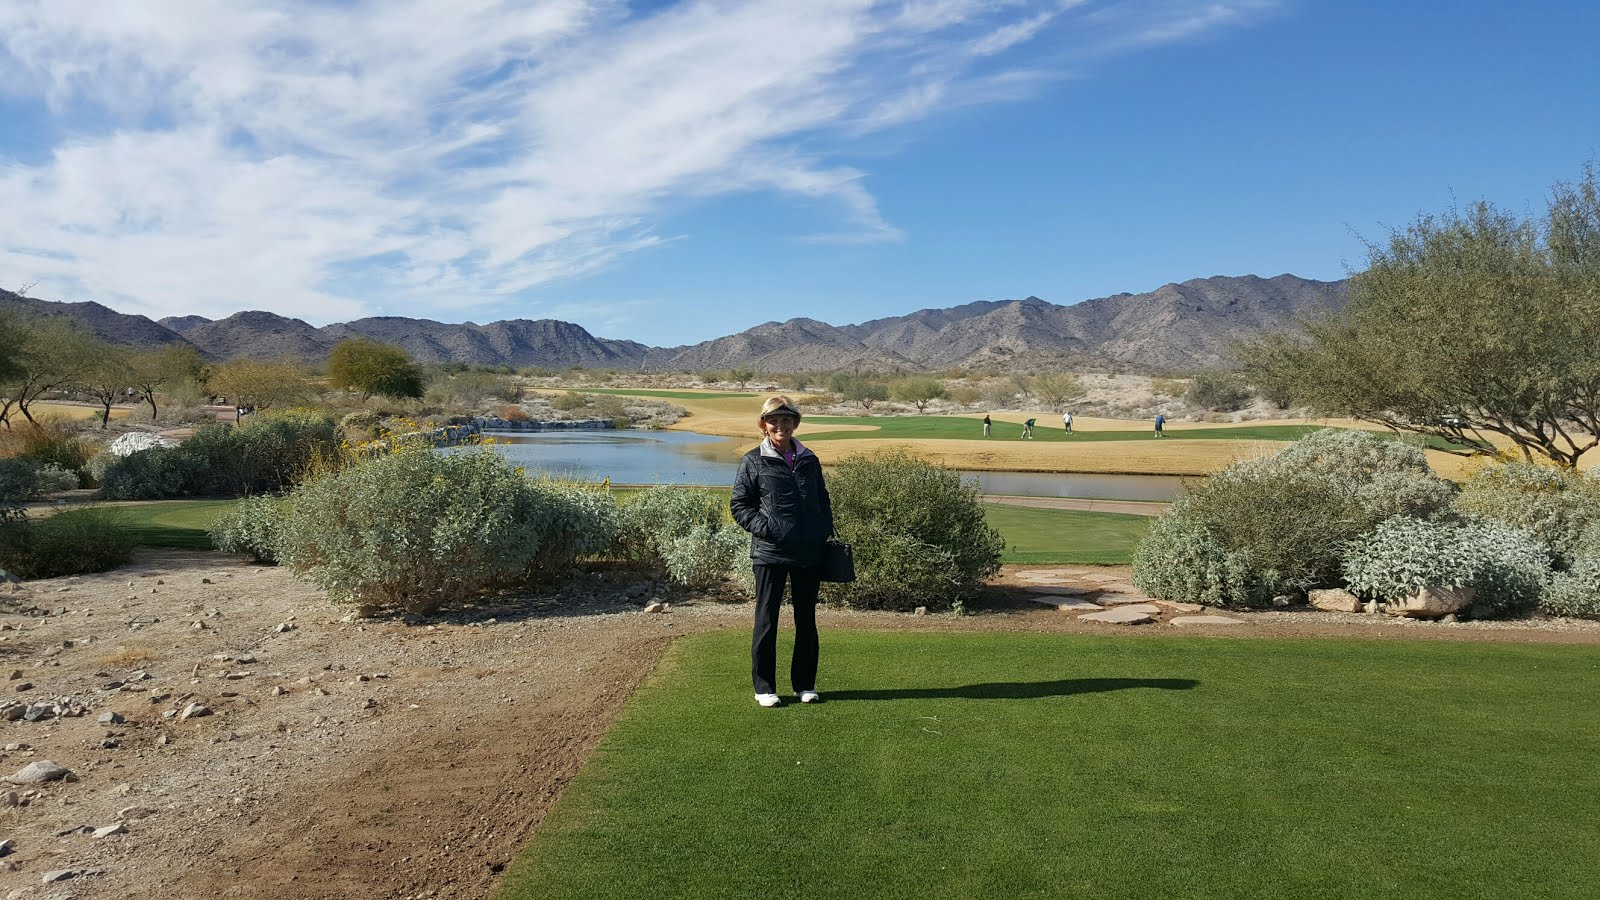 Great Way to Spend the Last Day of 2015. Verrado Golf Club in the White Tank Mountains